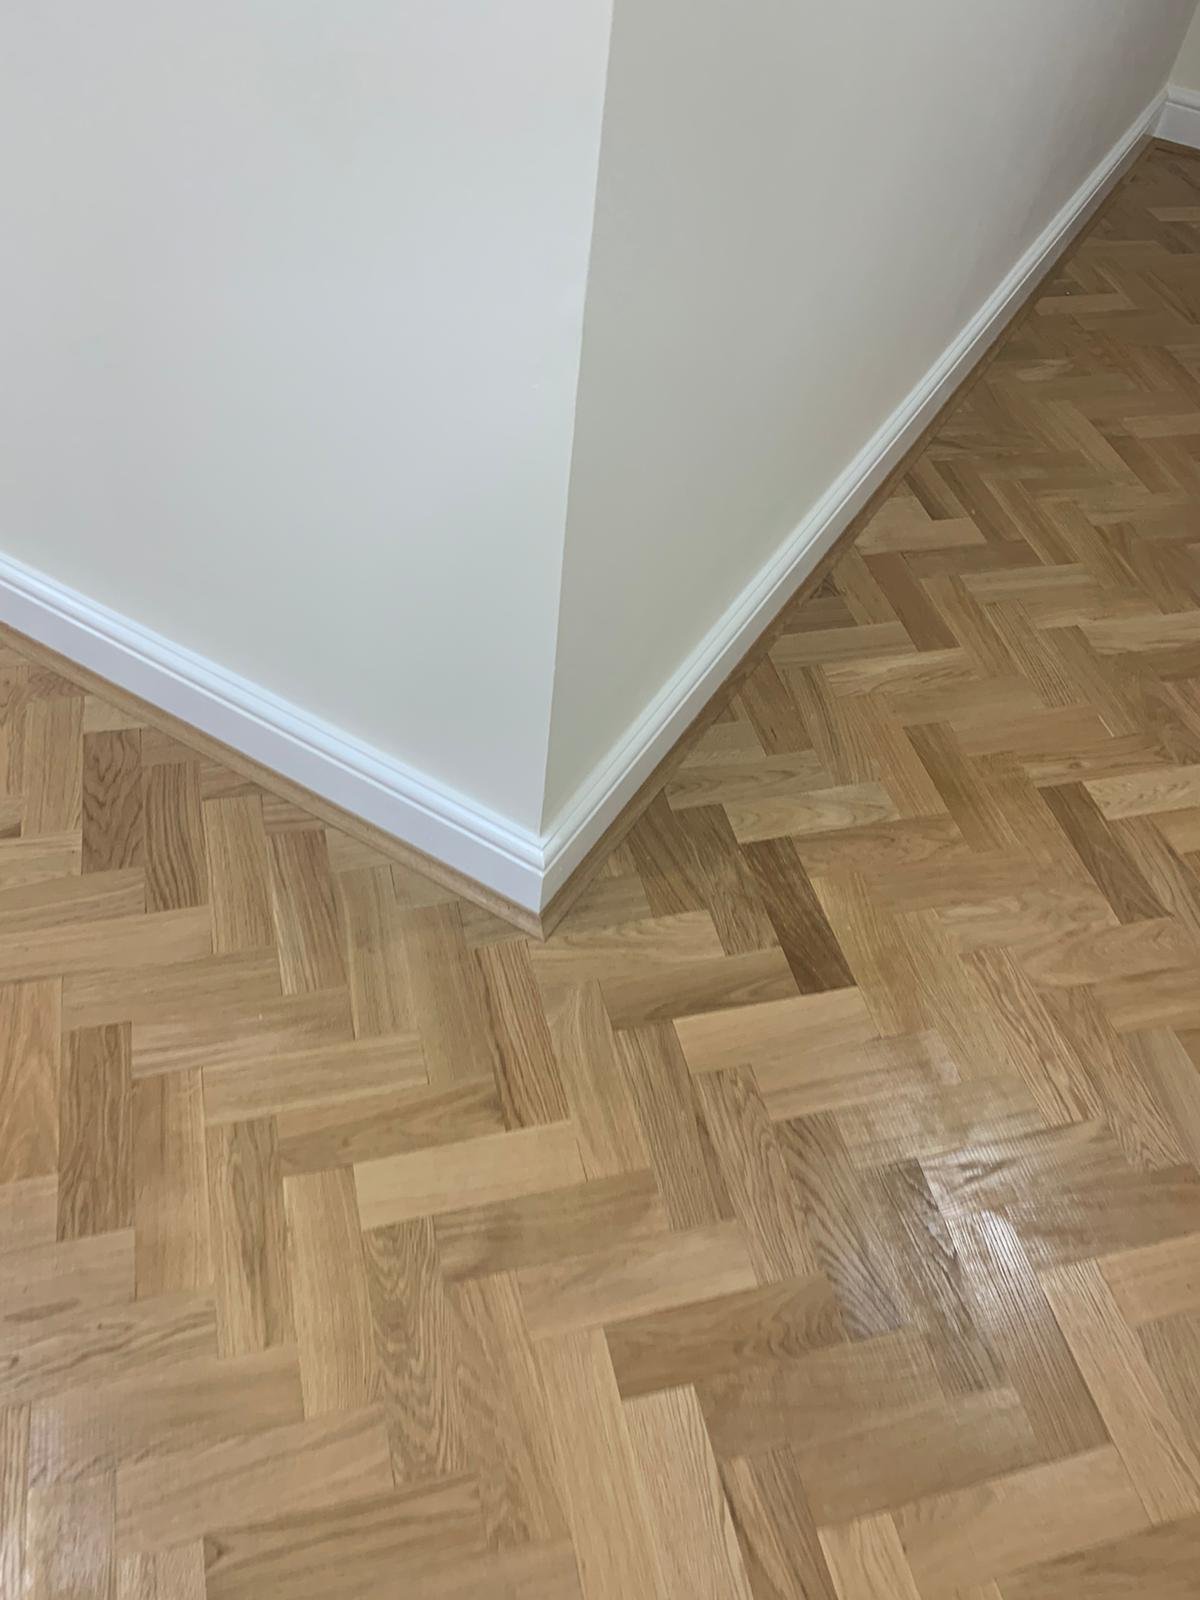 Prime Wood Block Wooden Flooring 4